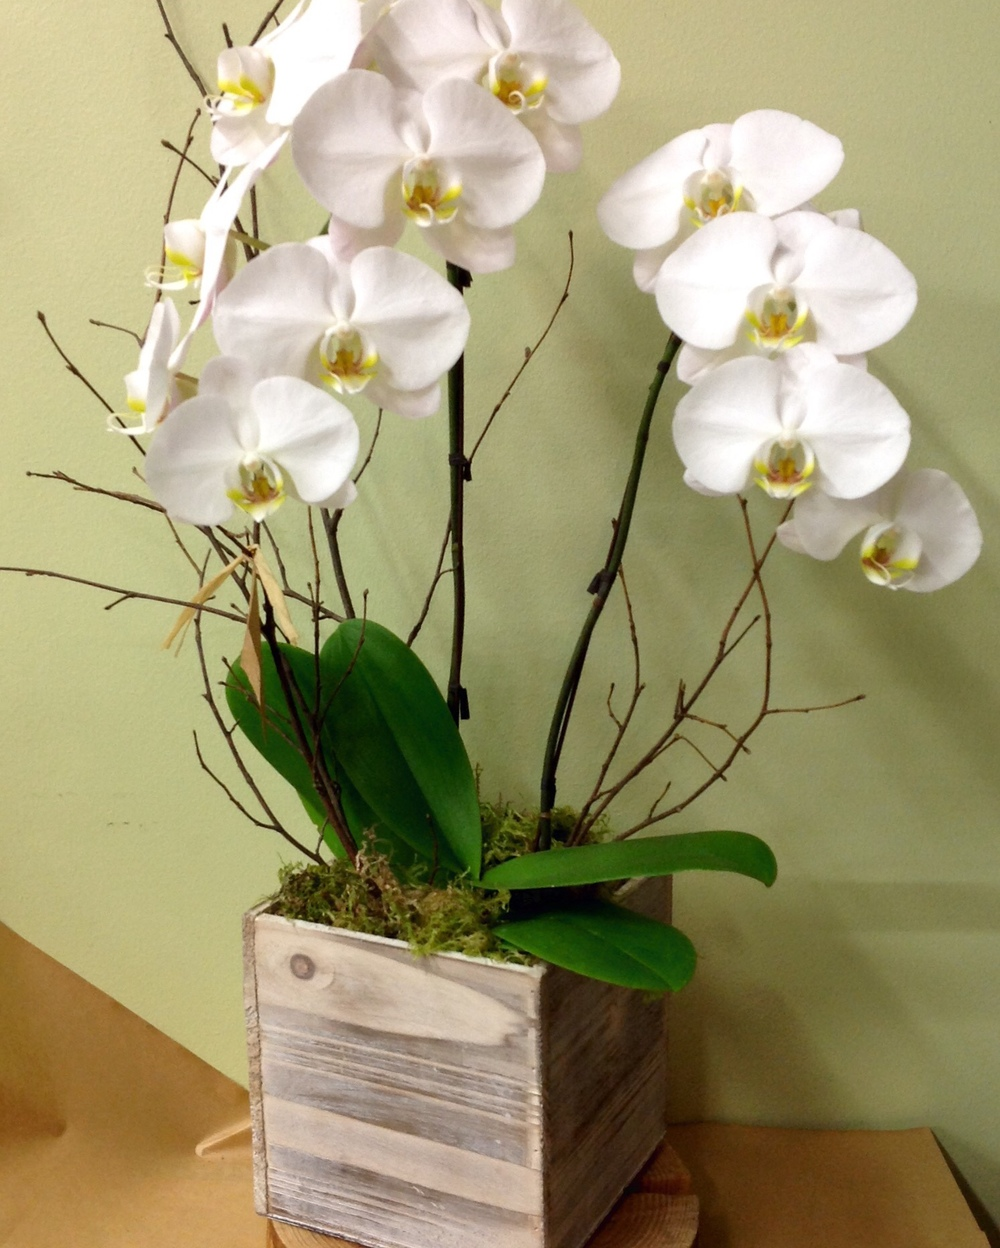 59. Double Phalaenopsis Orchid Plant in White